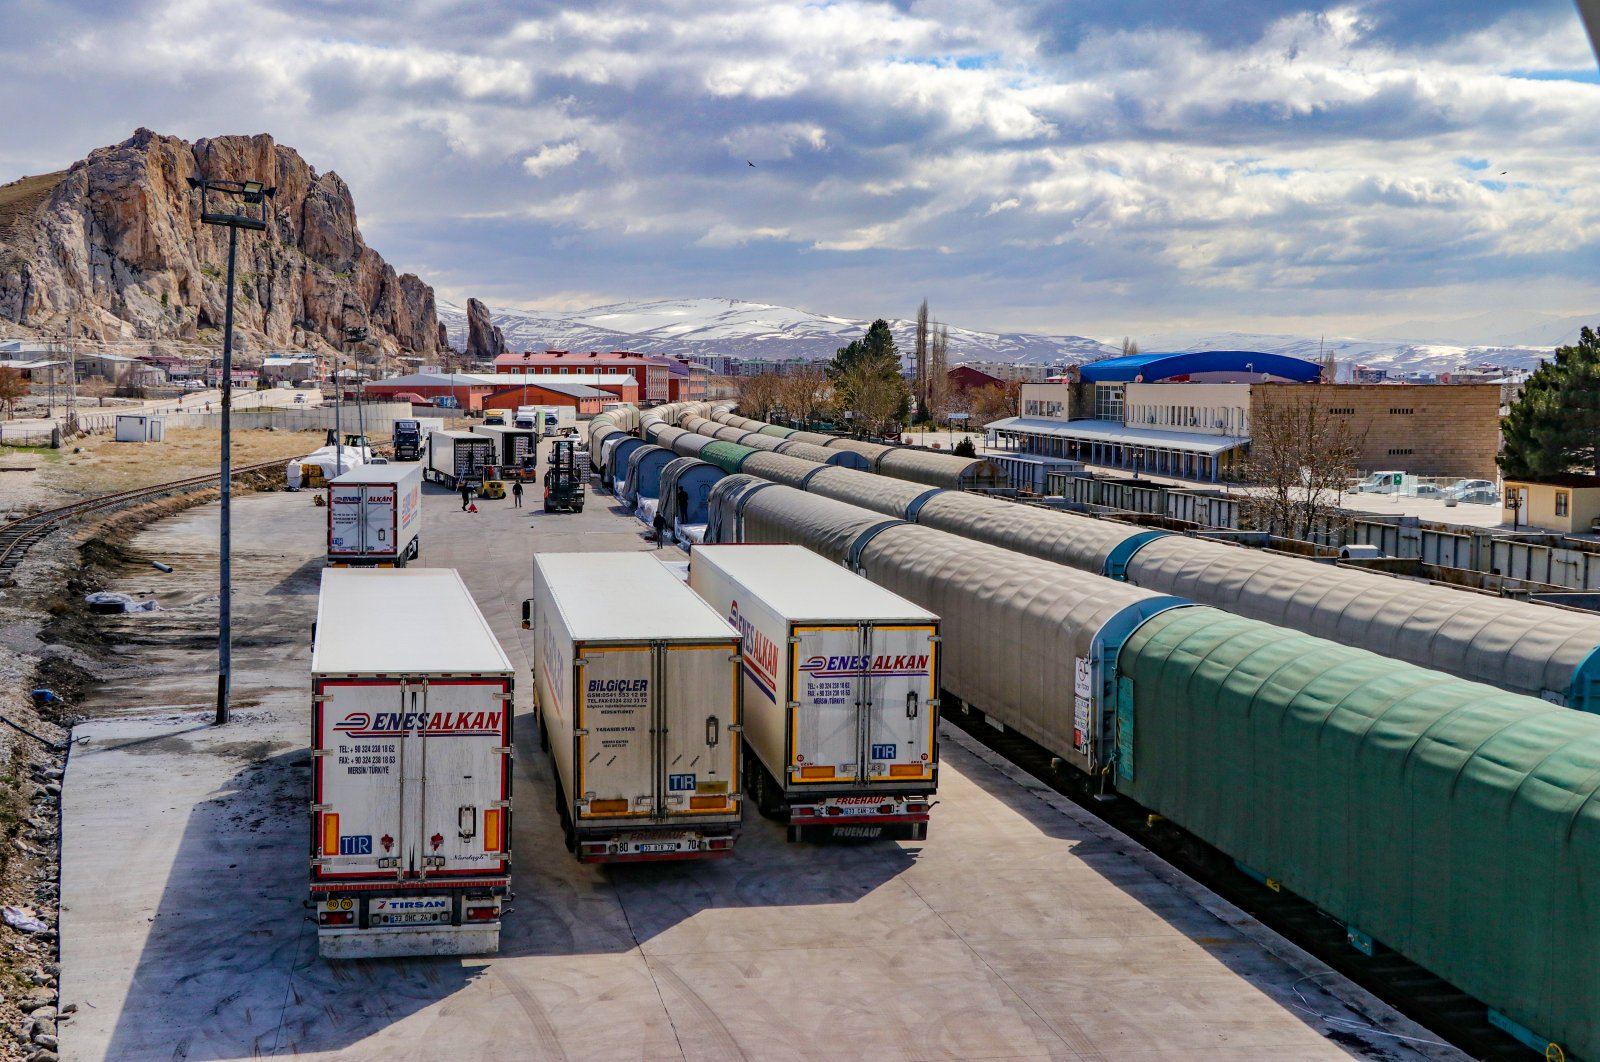 Trucks carrying goods from Turkey's southern province of Mersin and railway cars are seen near a logistics center in the eastern province of Van near the Iranian border, March 23, 2020. (AA Photo)